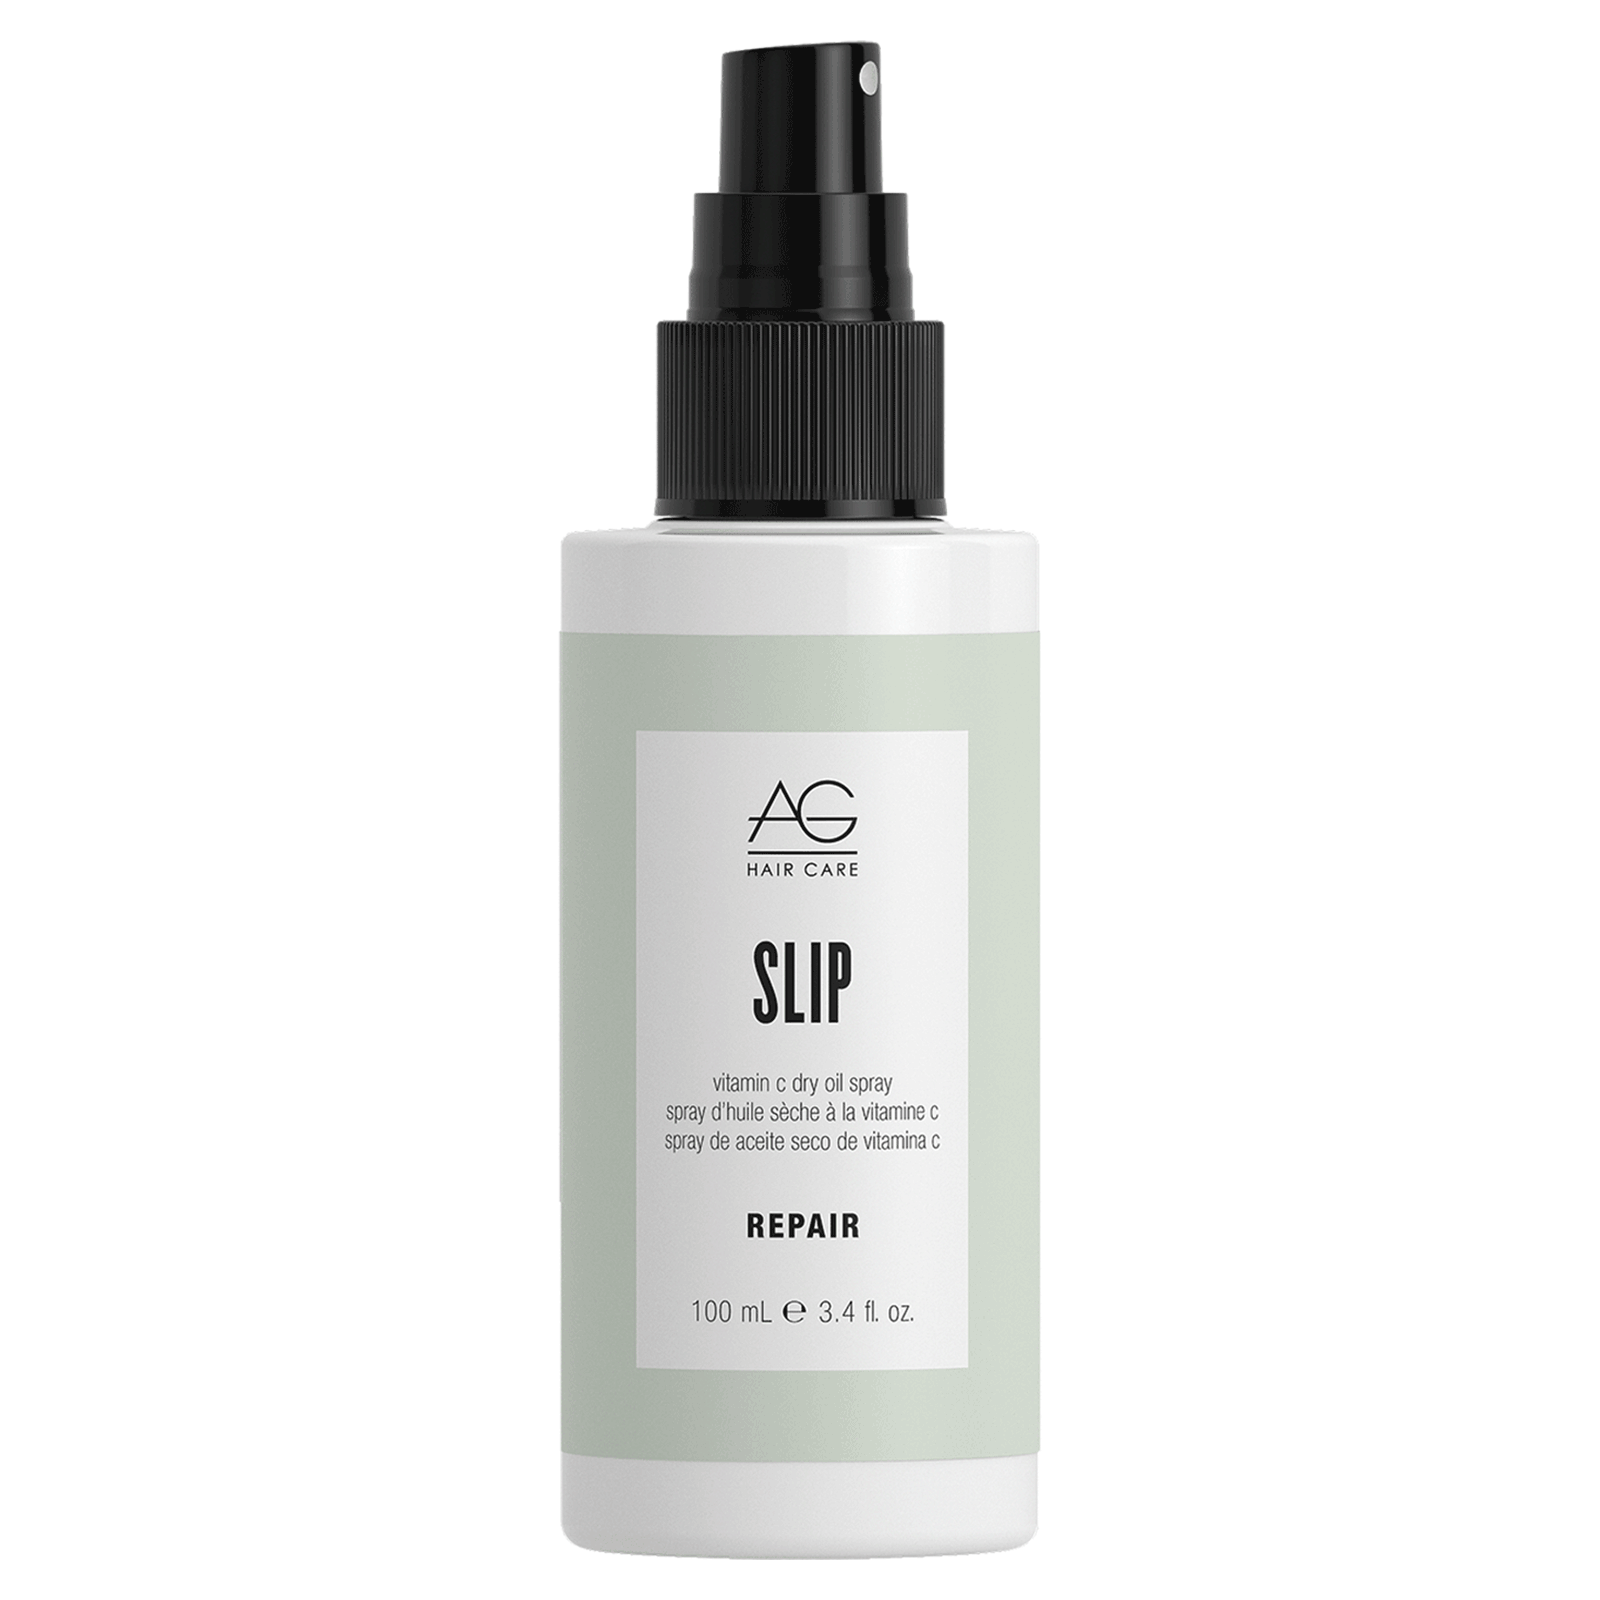 Vita C Slip Dry Oil Spray